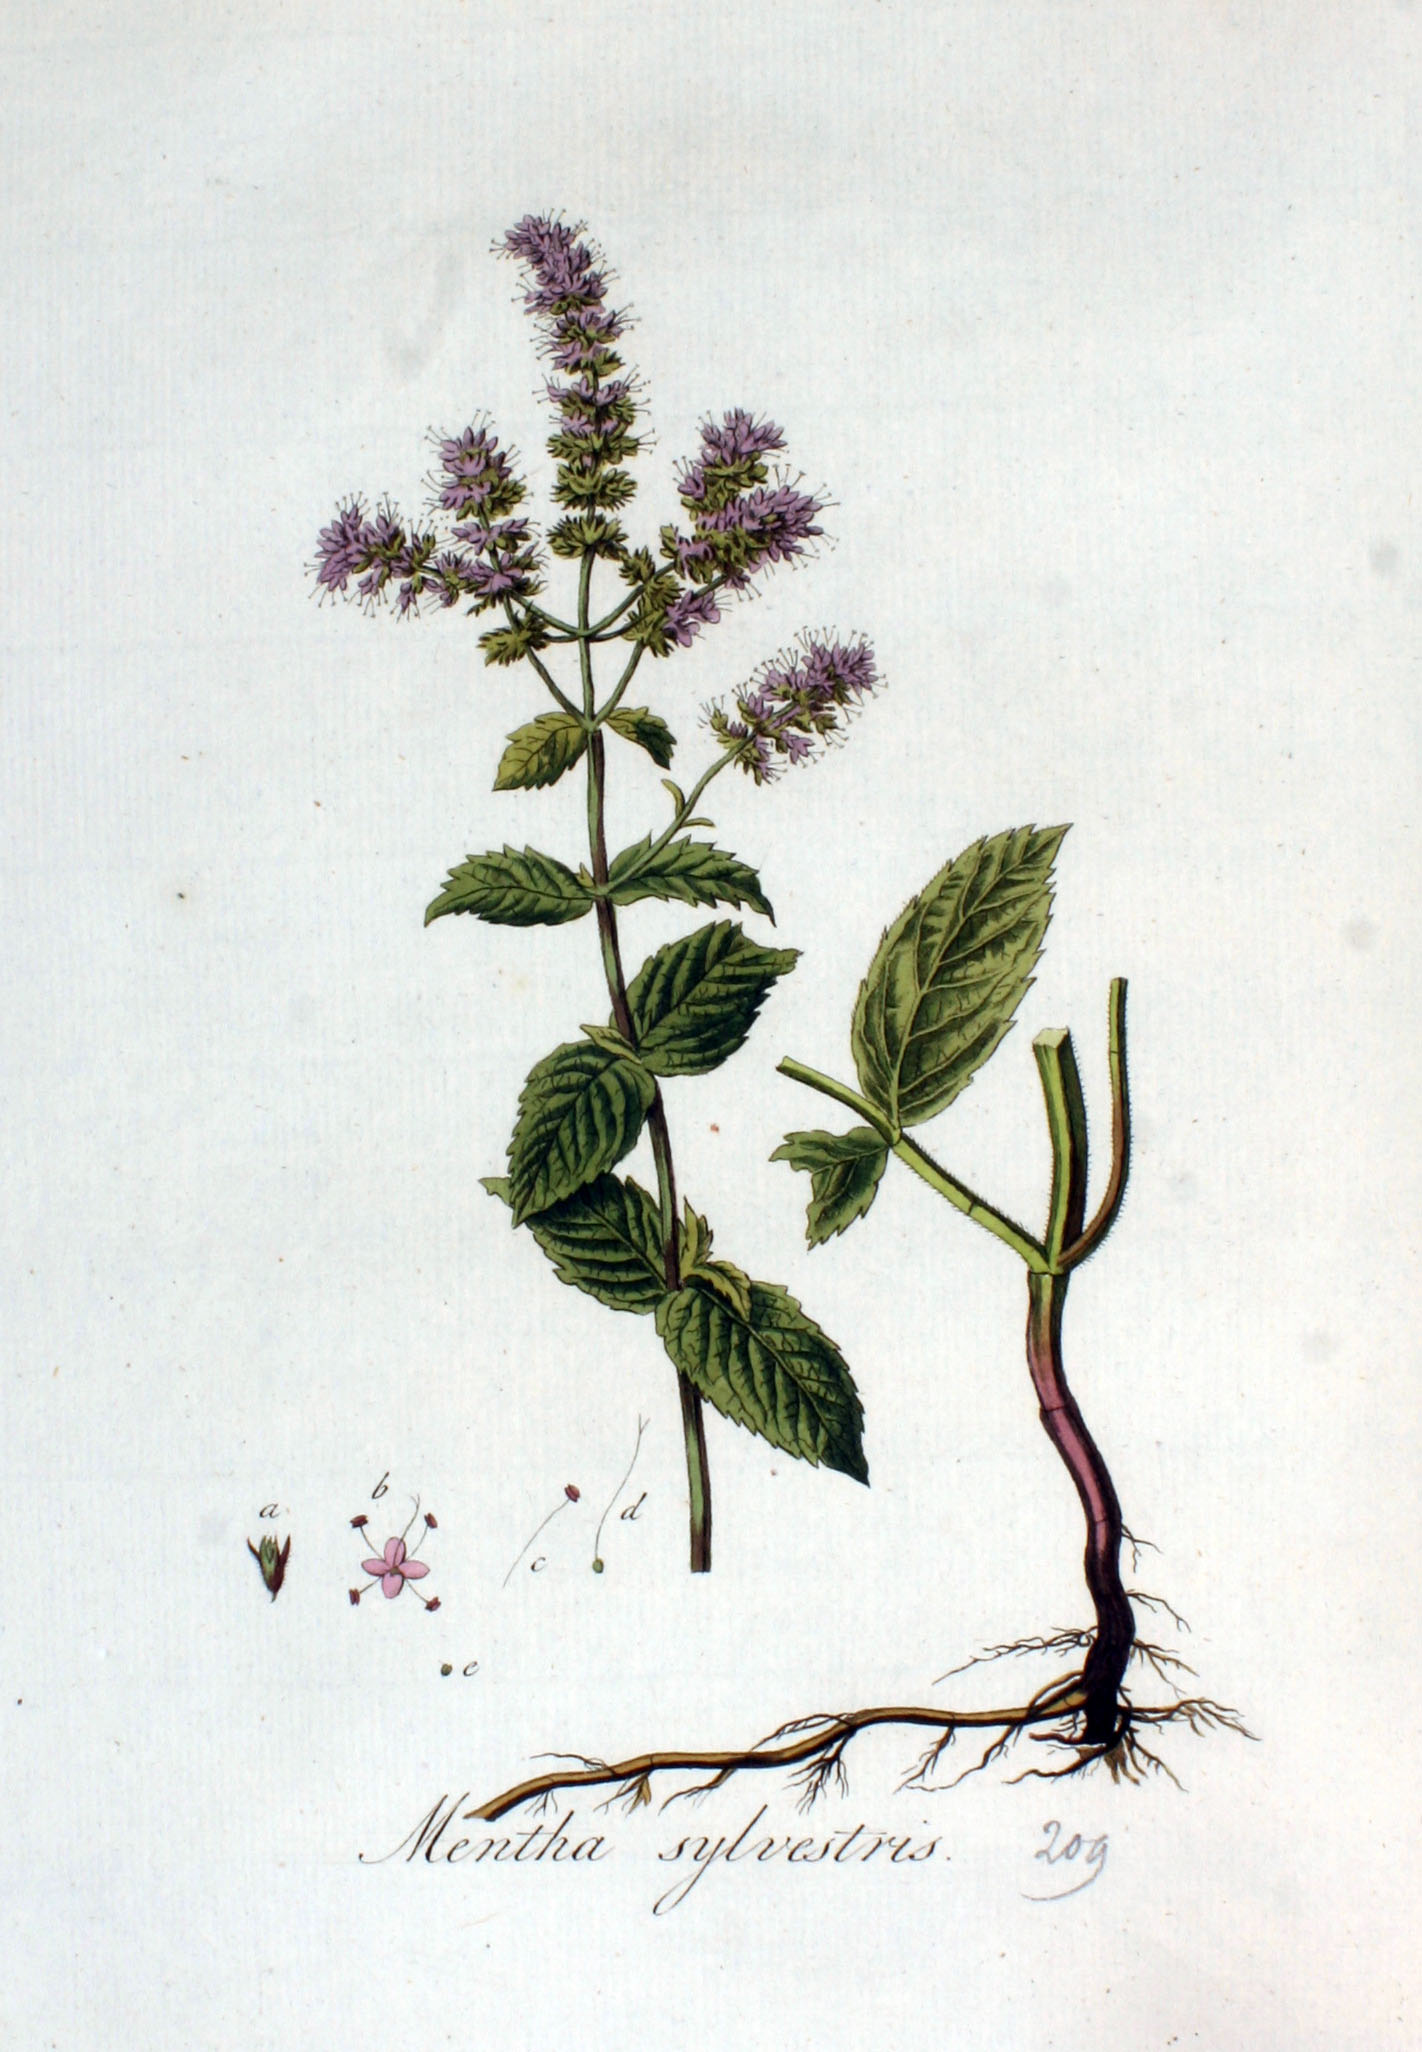 Menthe sylvestre - Wikiwand